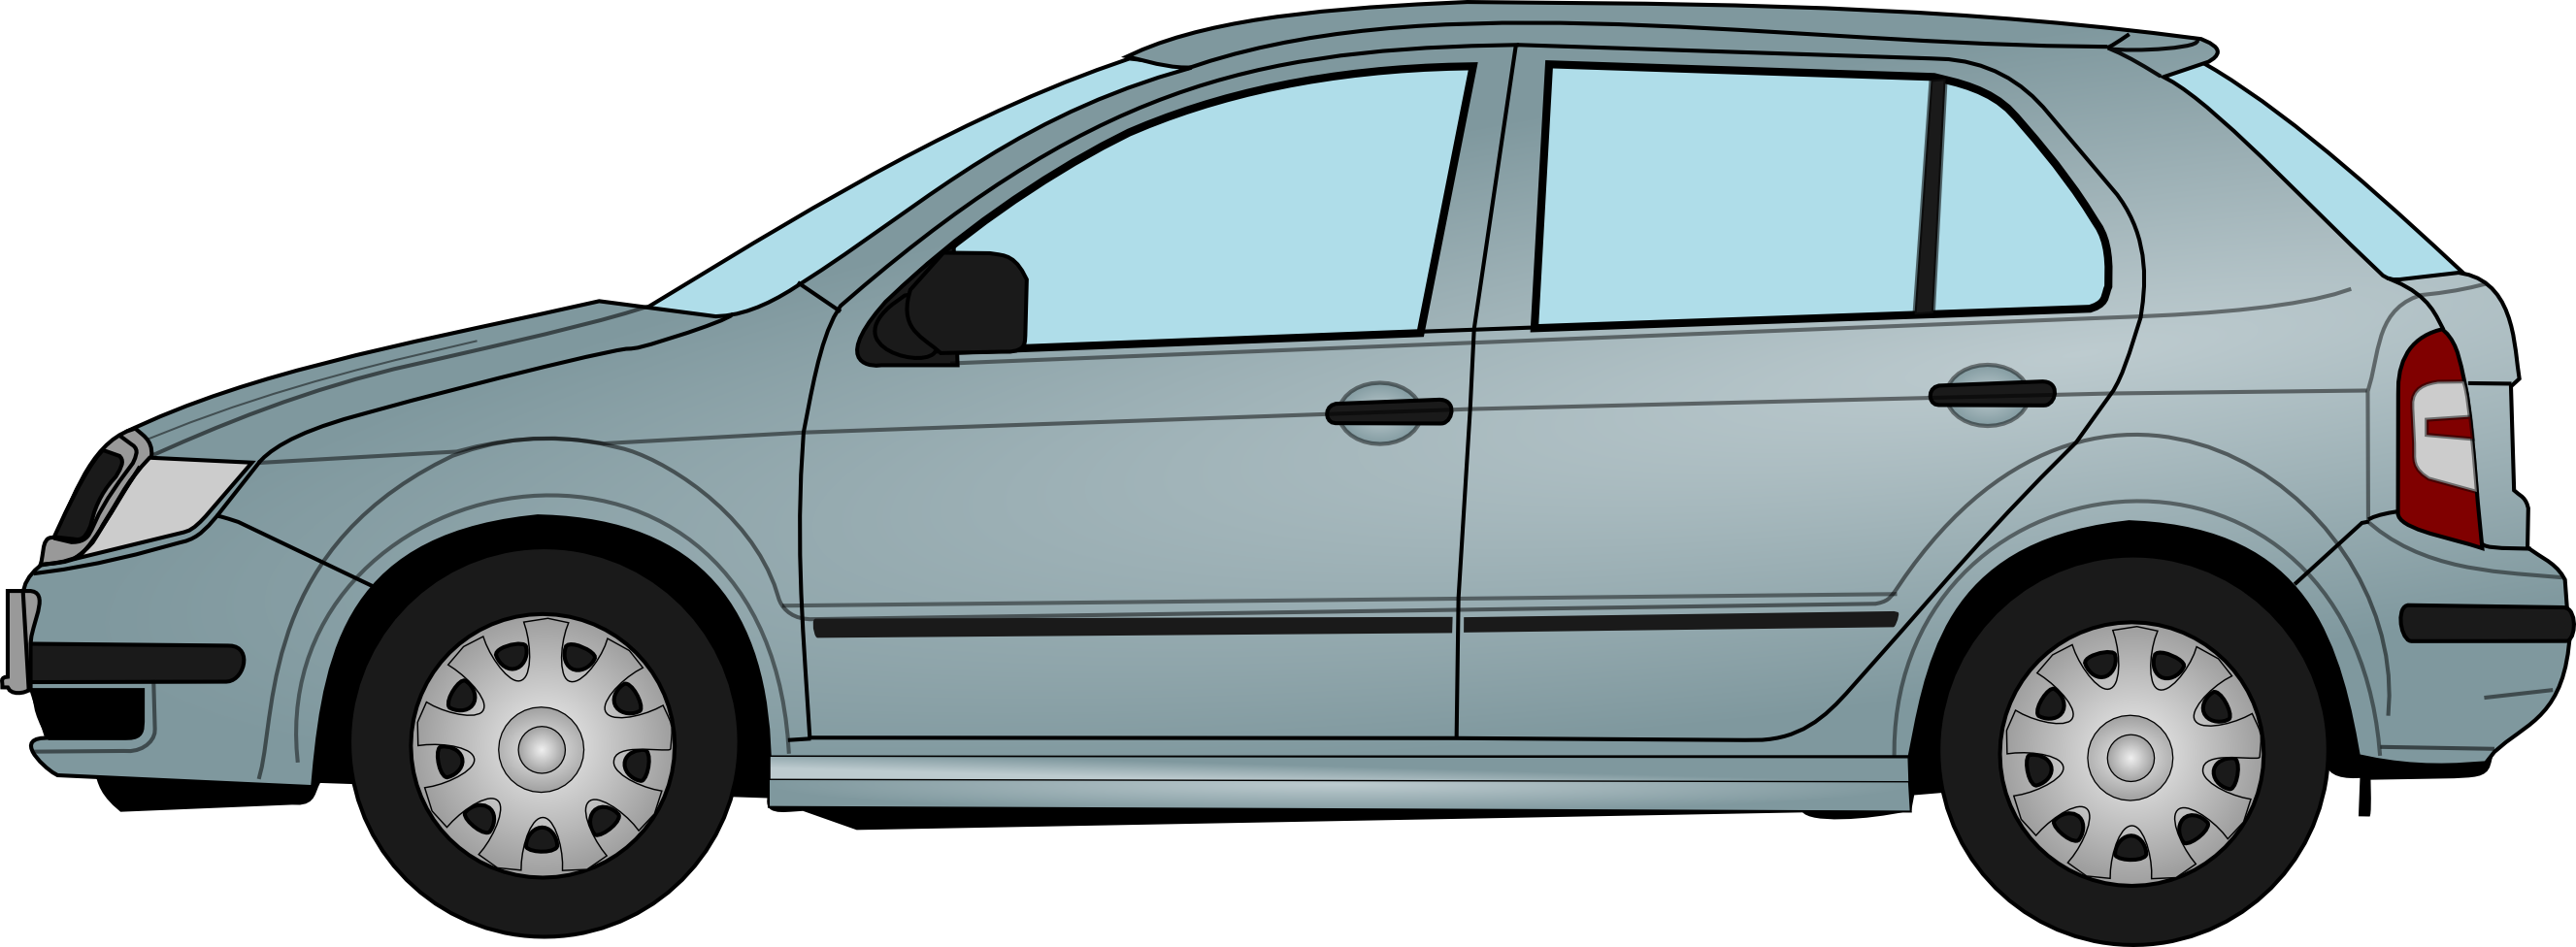 collection of car. Clipart cars profile